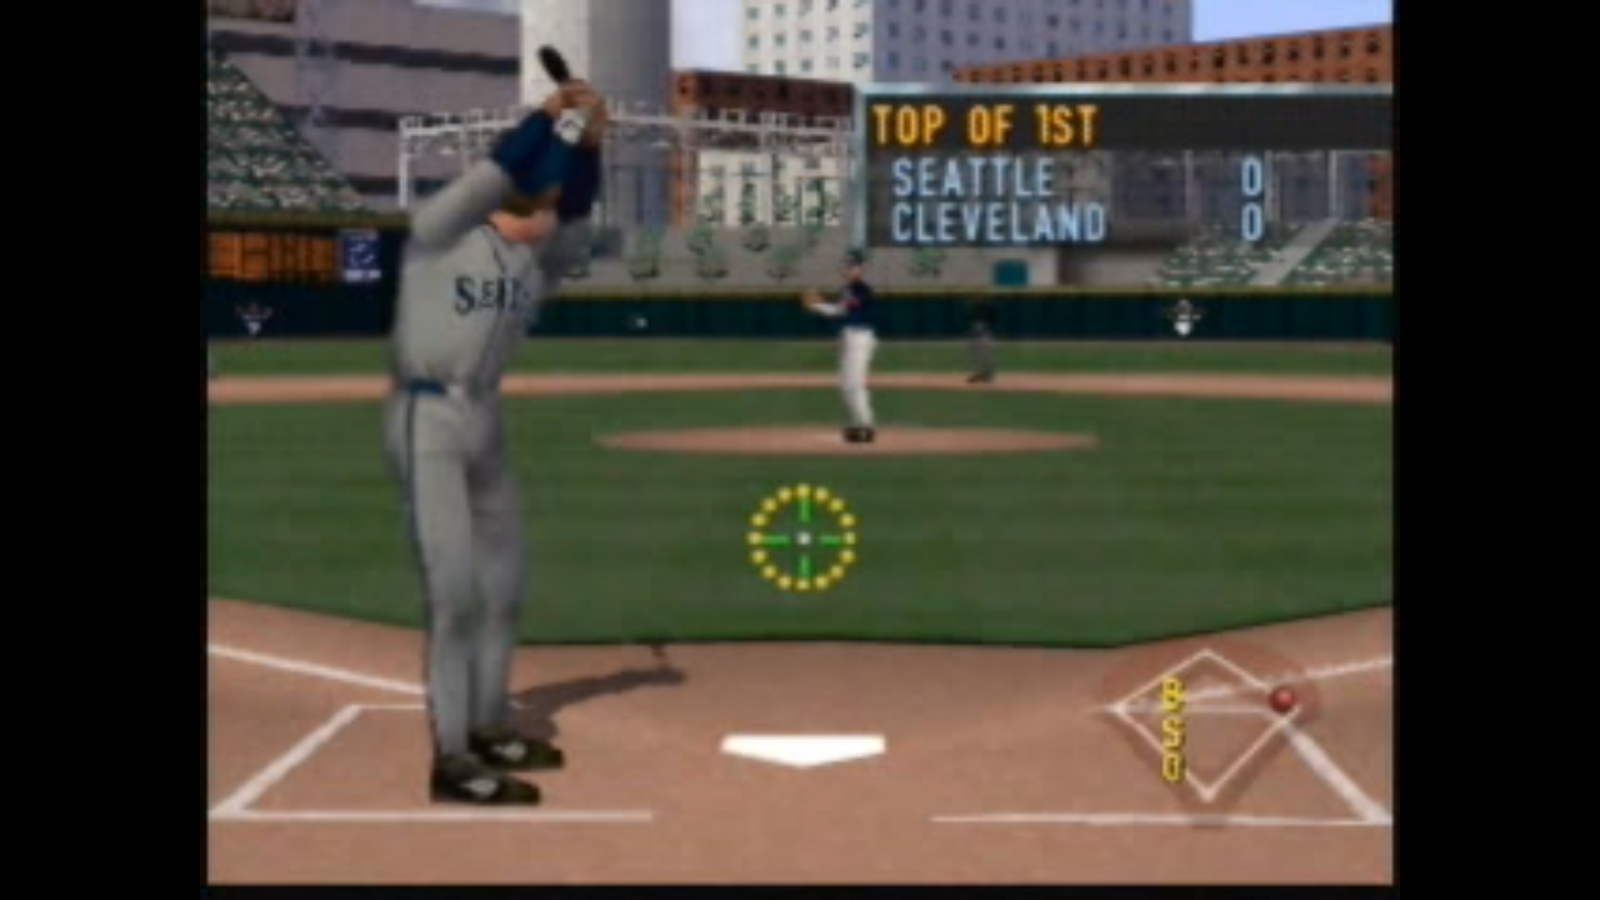 51c998a3ec A look at the hitting interface, prior to a pitch. Alex Rodriguez is at the  plate.